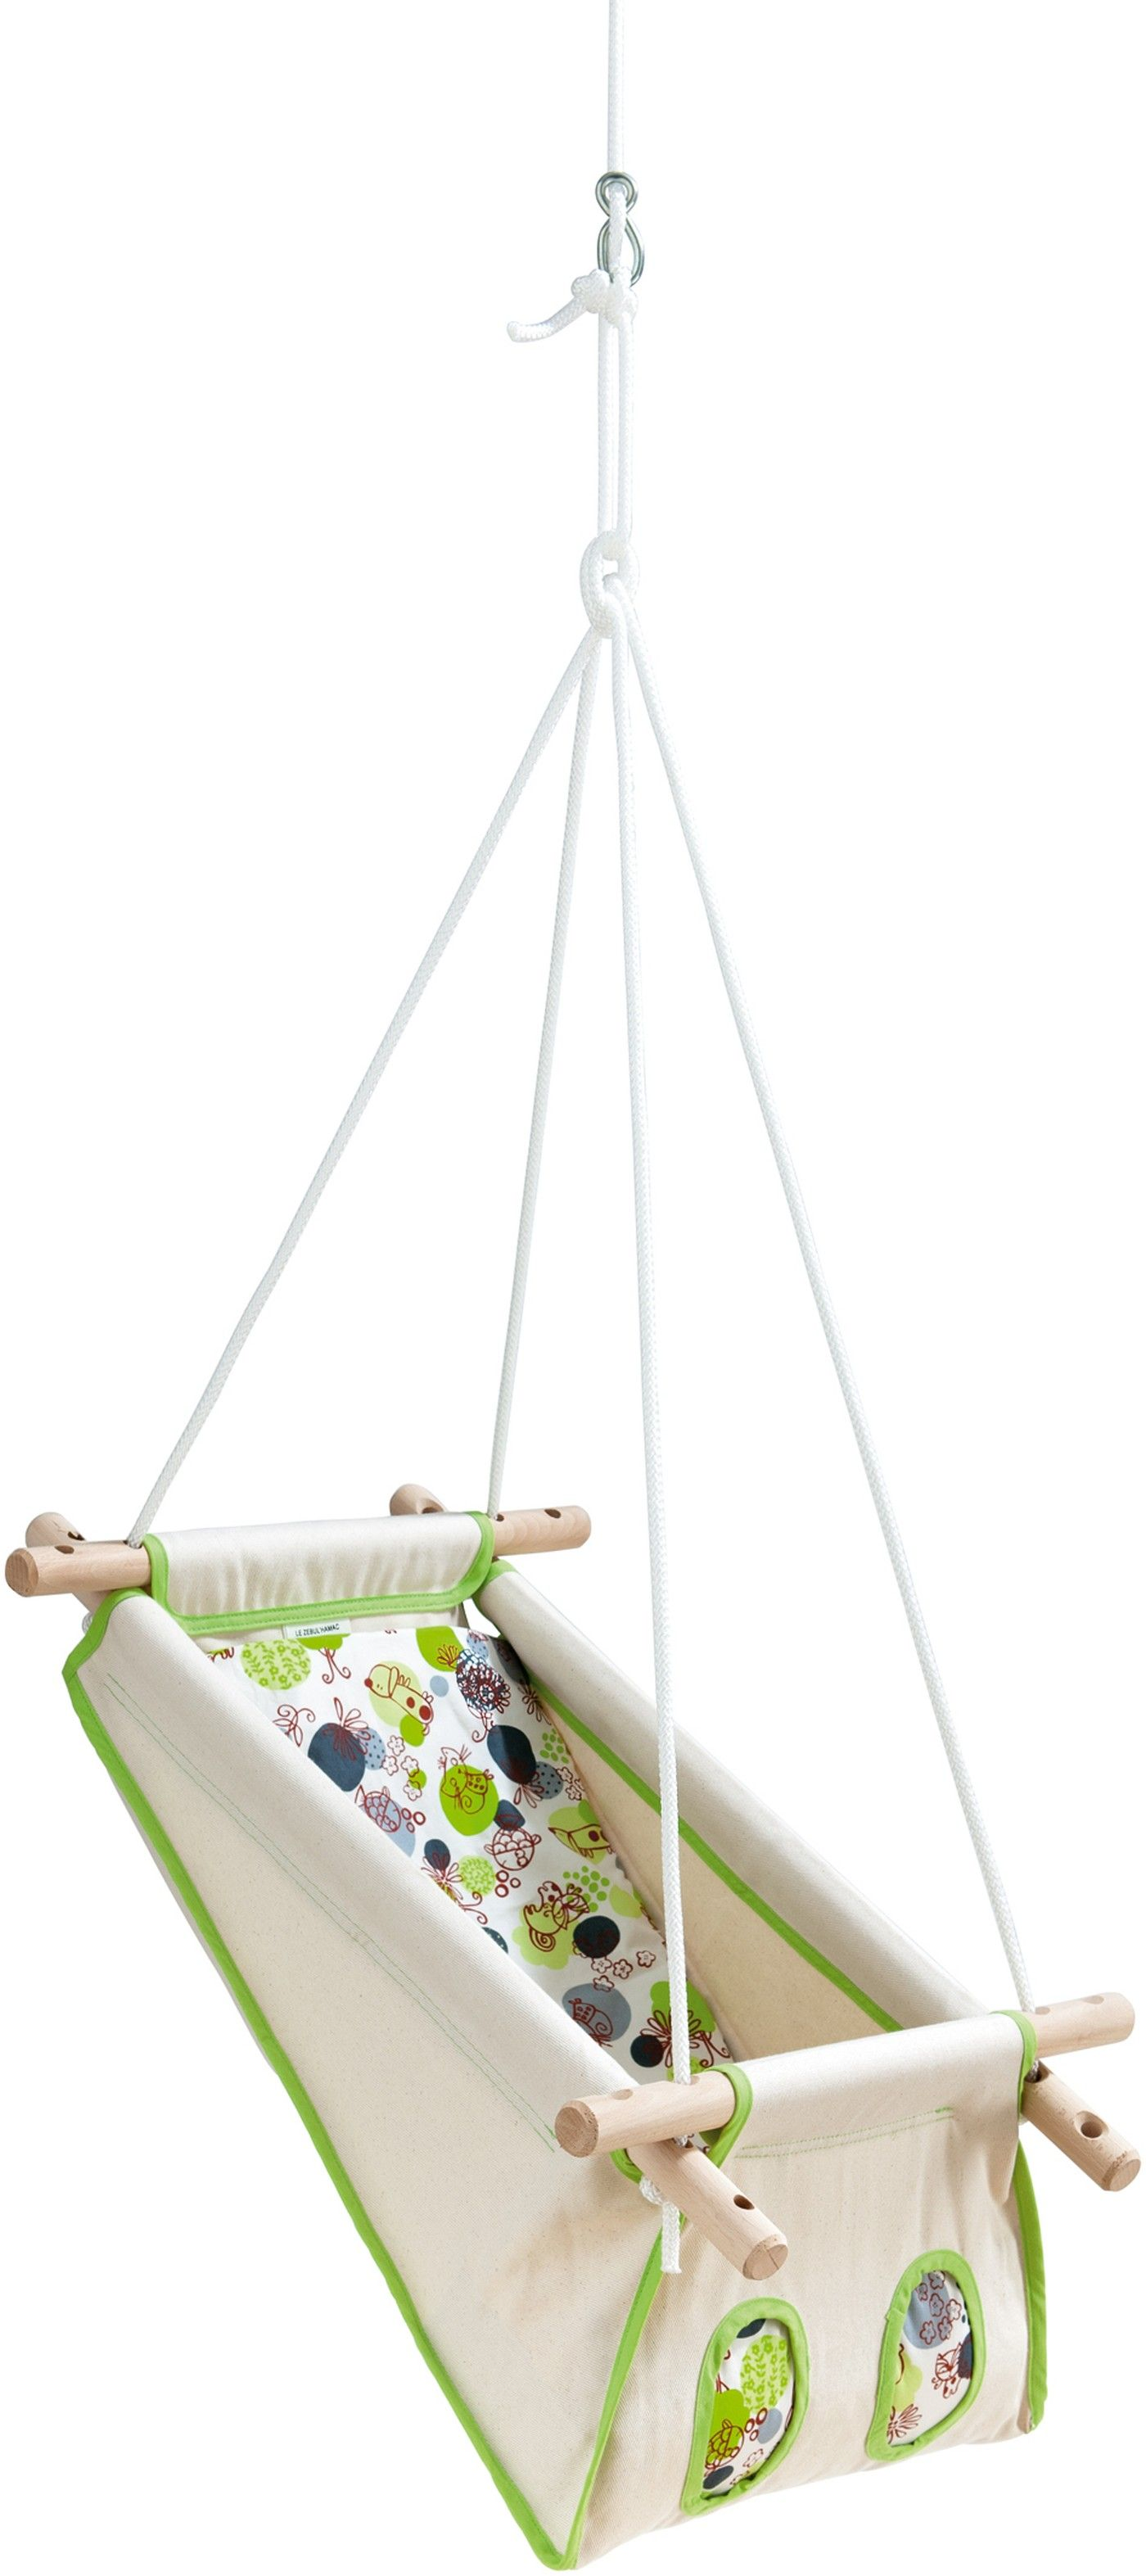 outdoor swing for comfortable hammocks chair hanging prices with indoor stand size adjustable full chairs kids of sale hammock seat